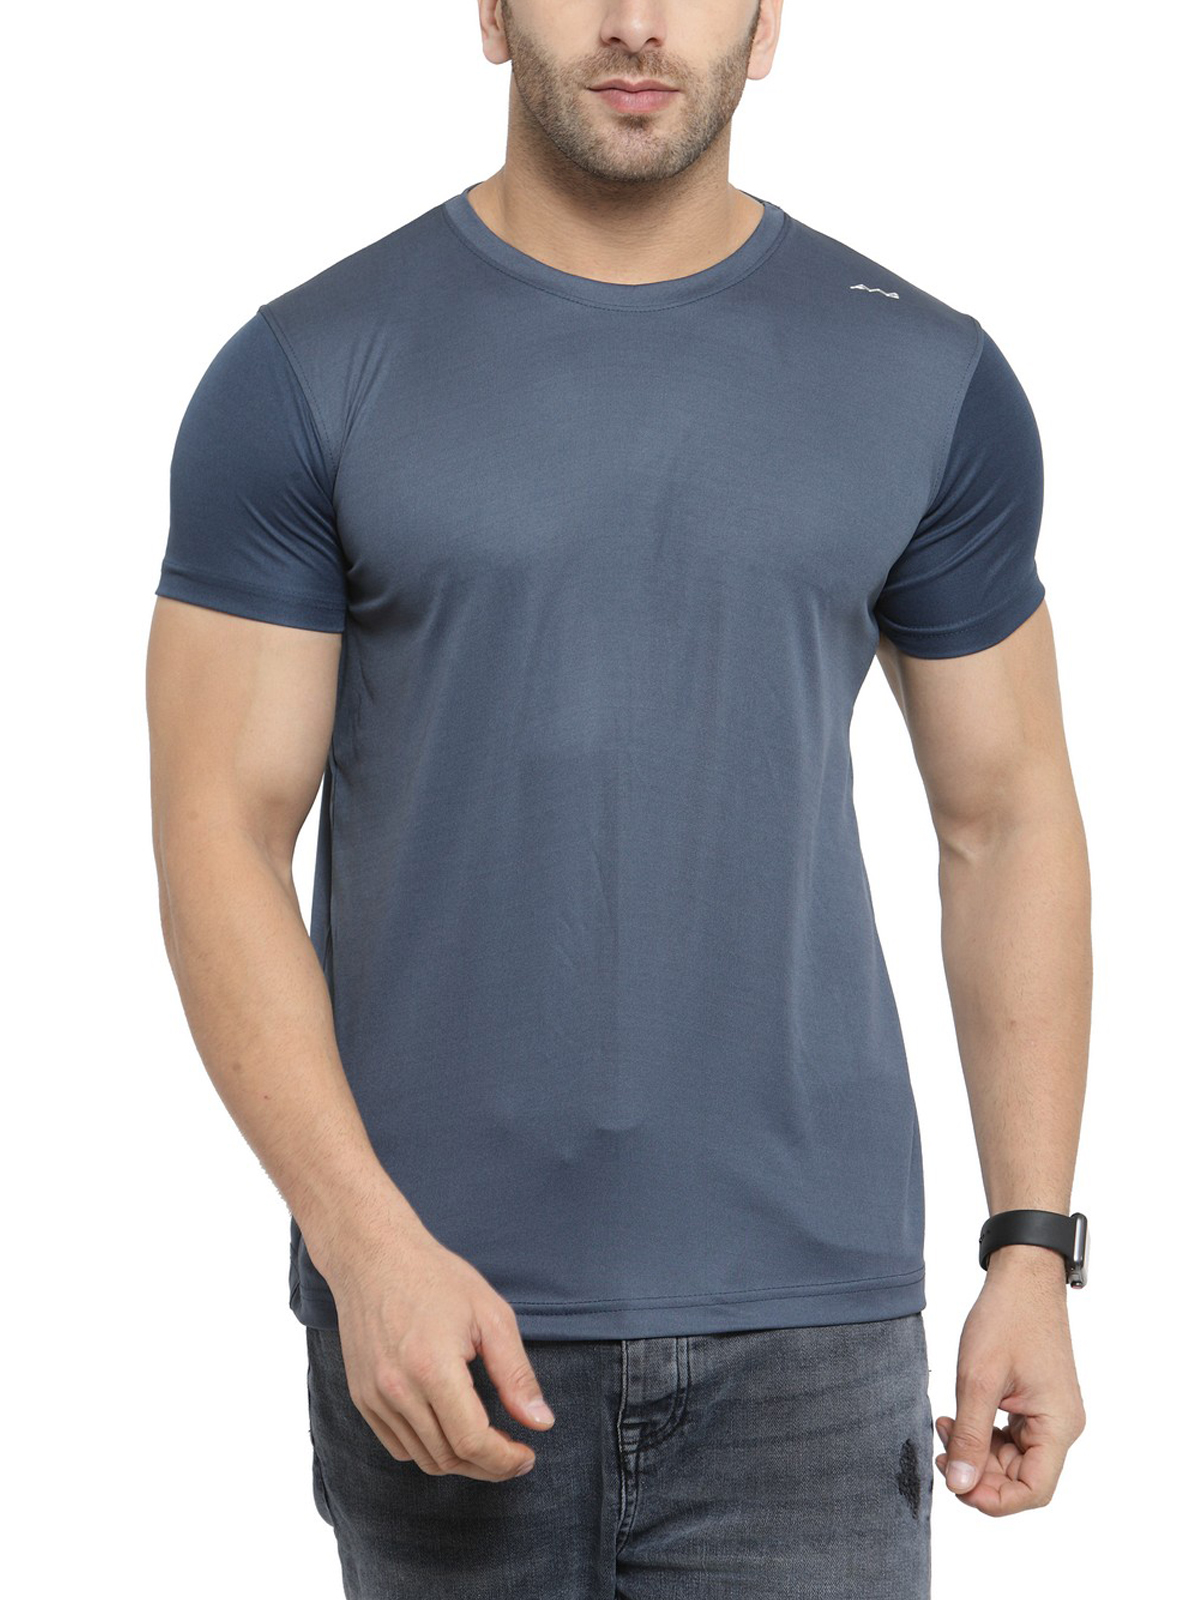 AWG Men's Grey Jersey Dryfit Polyester Round Neck T-shirt